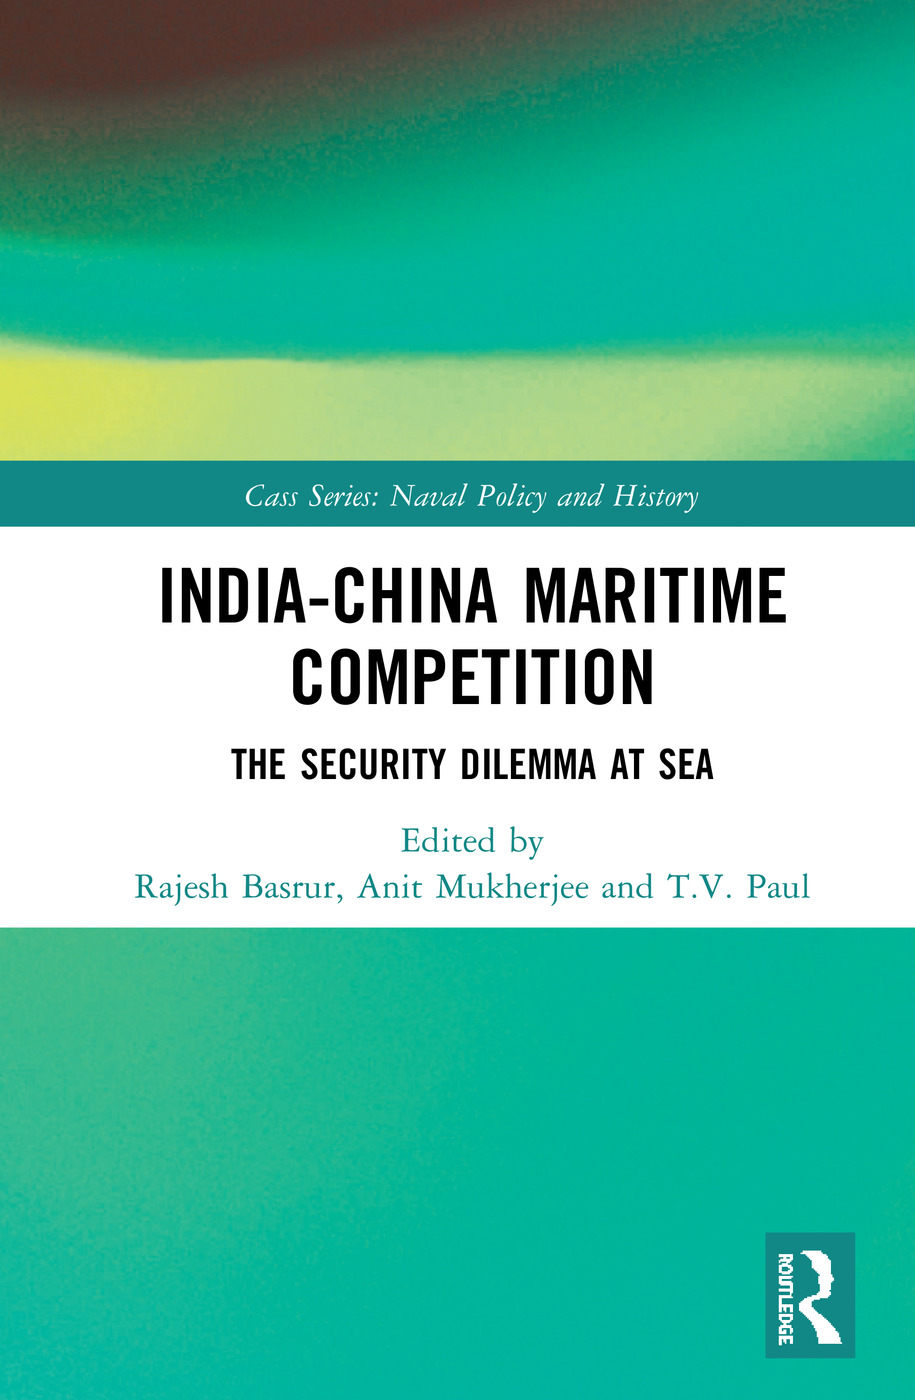 India-China Maritime Competition: The Security Dilemma at Sea book cover